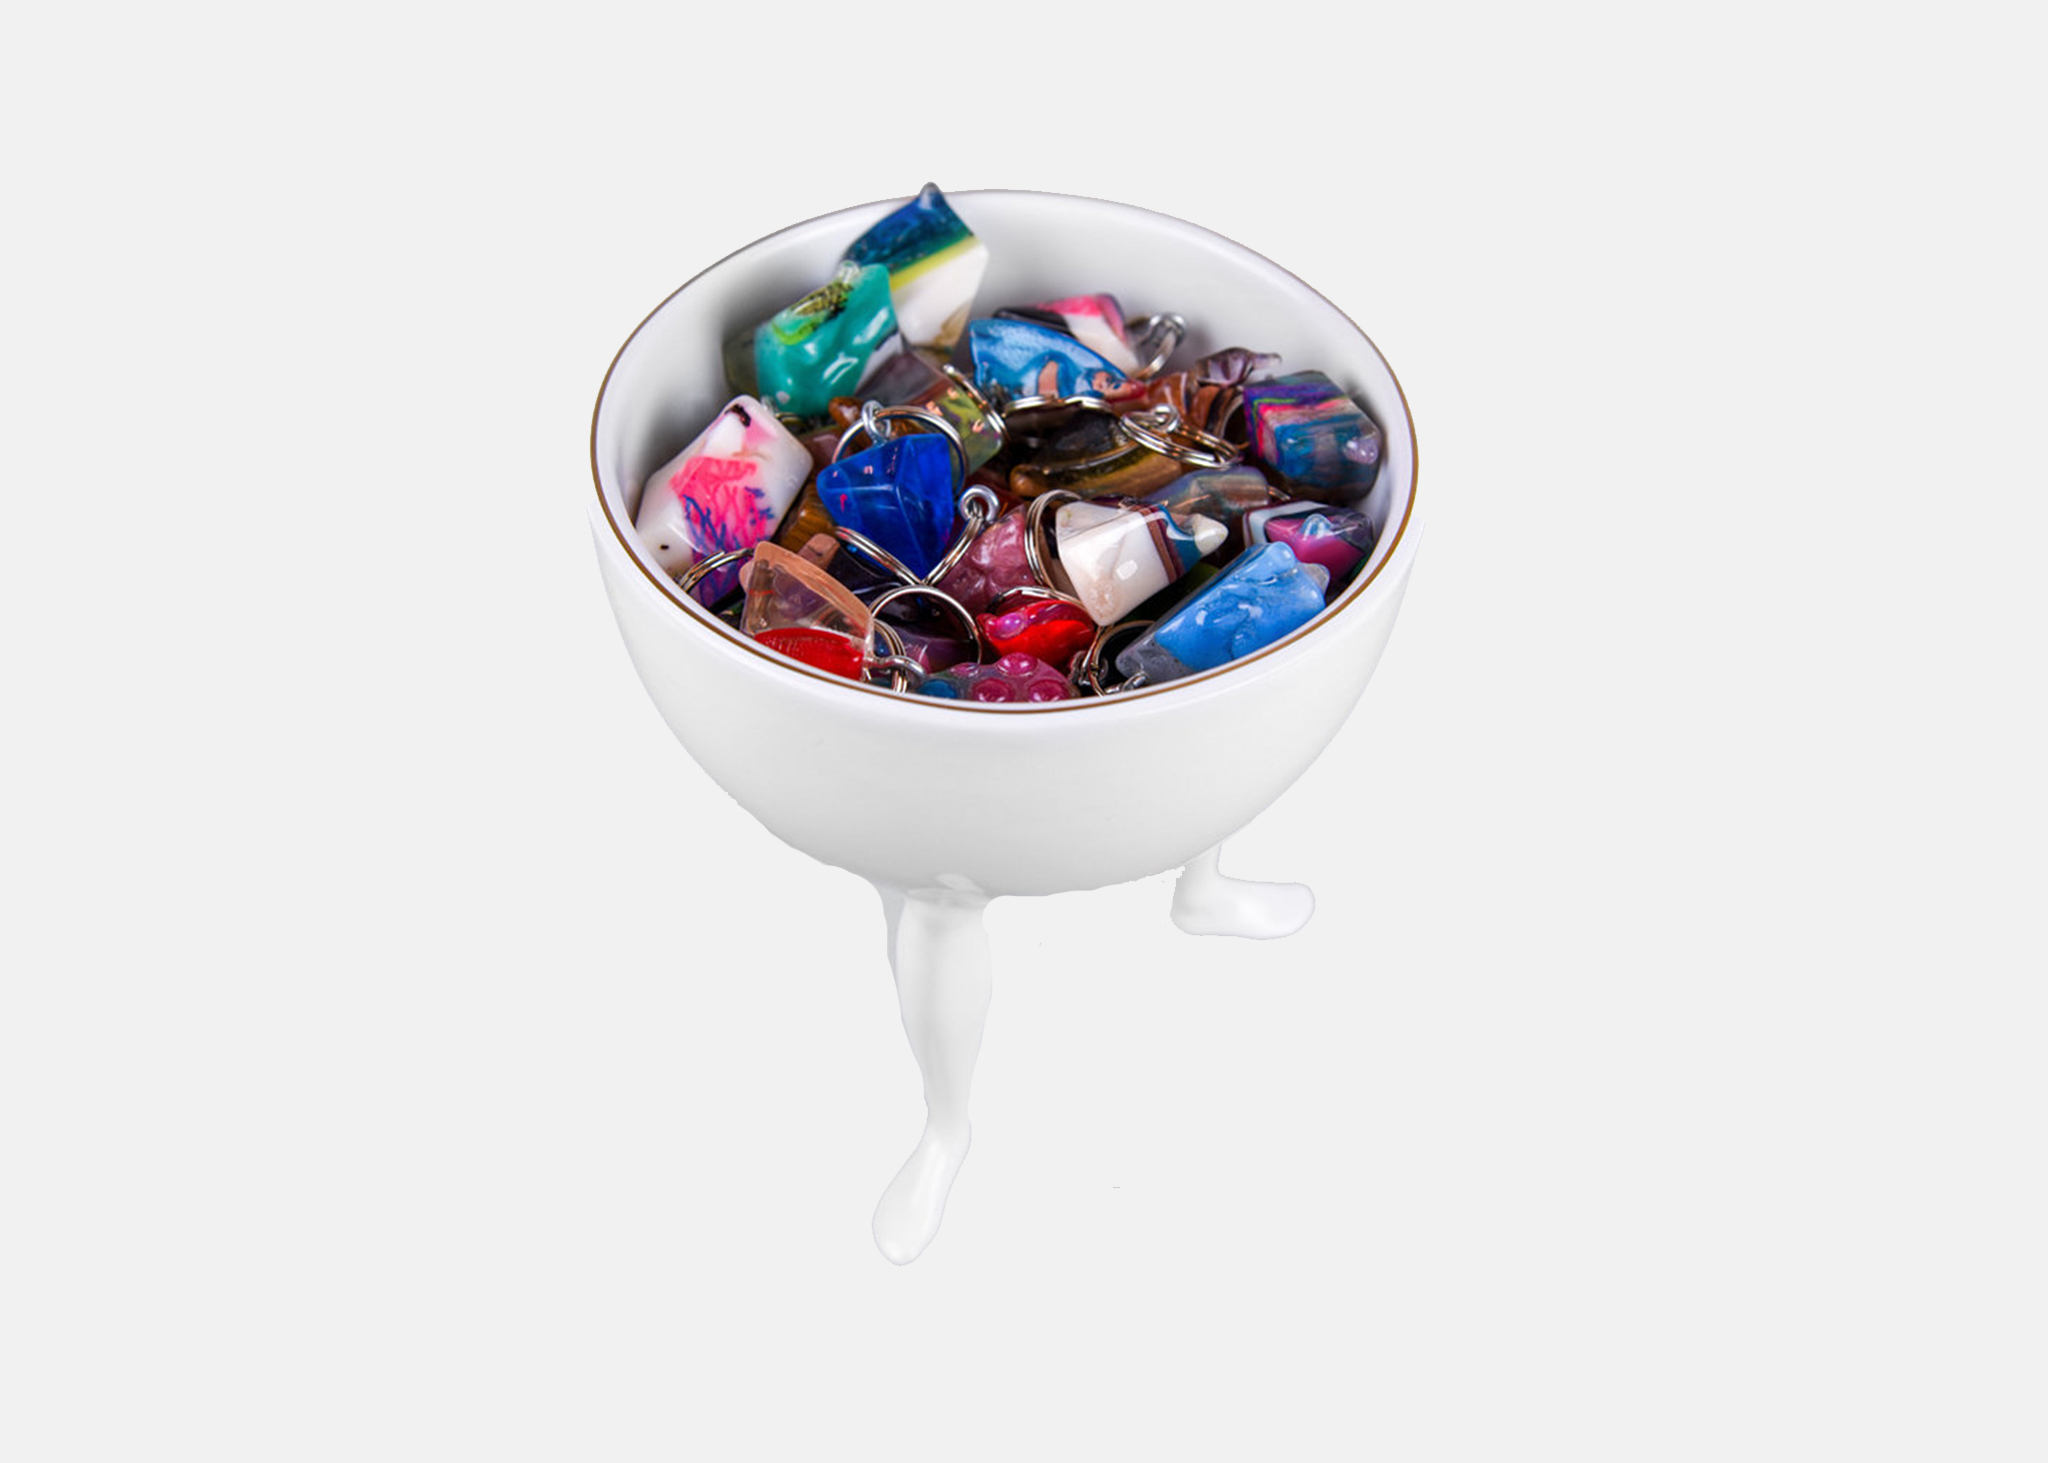 an image of the nugget keychains in a bowl